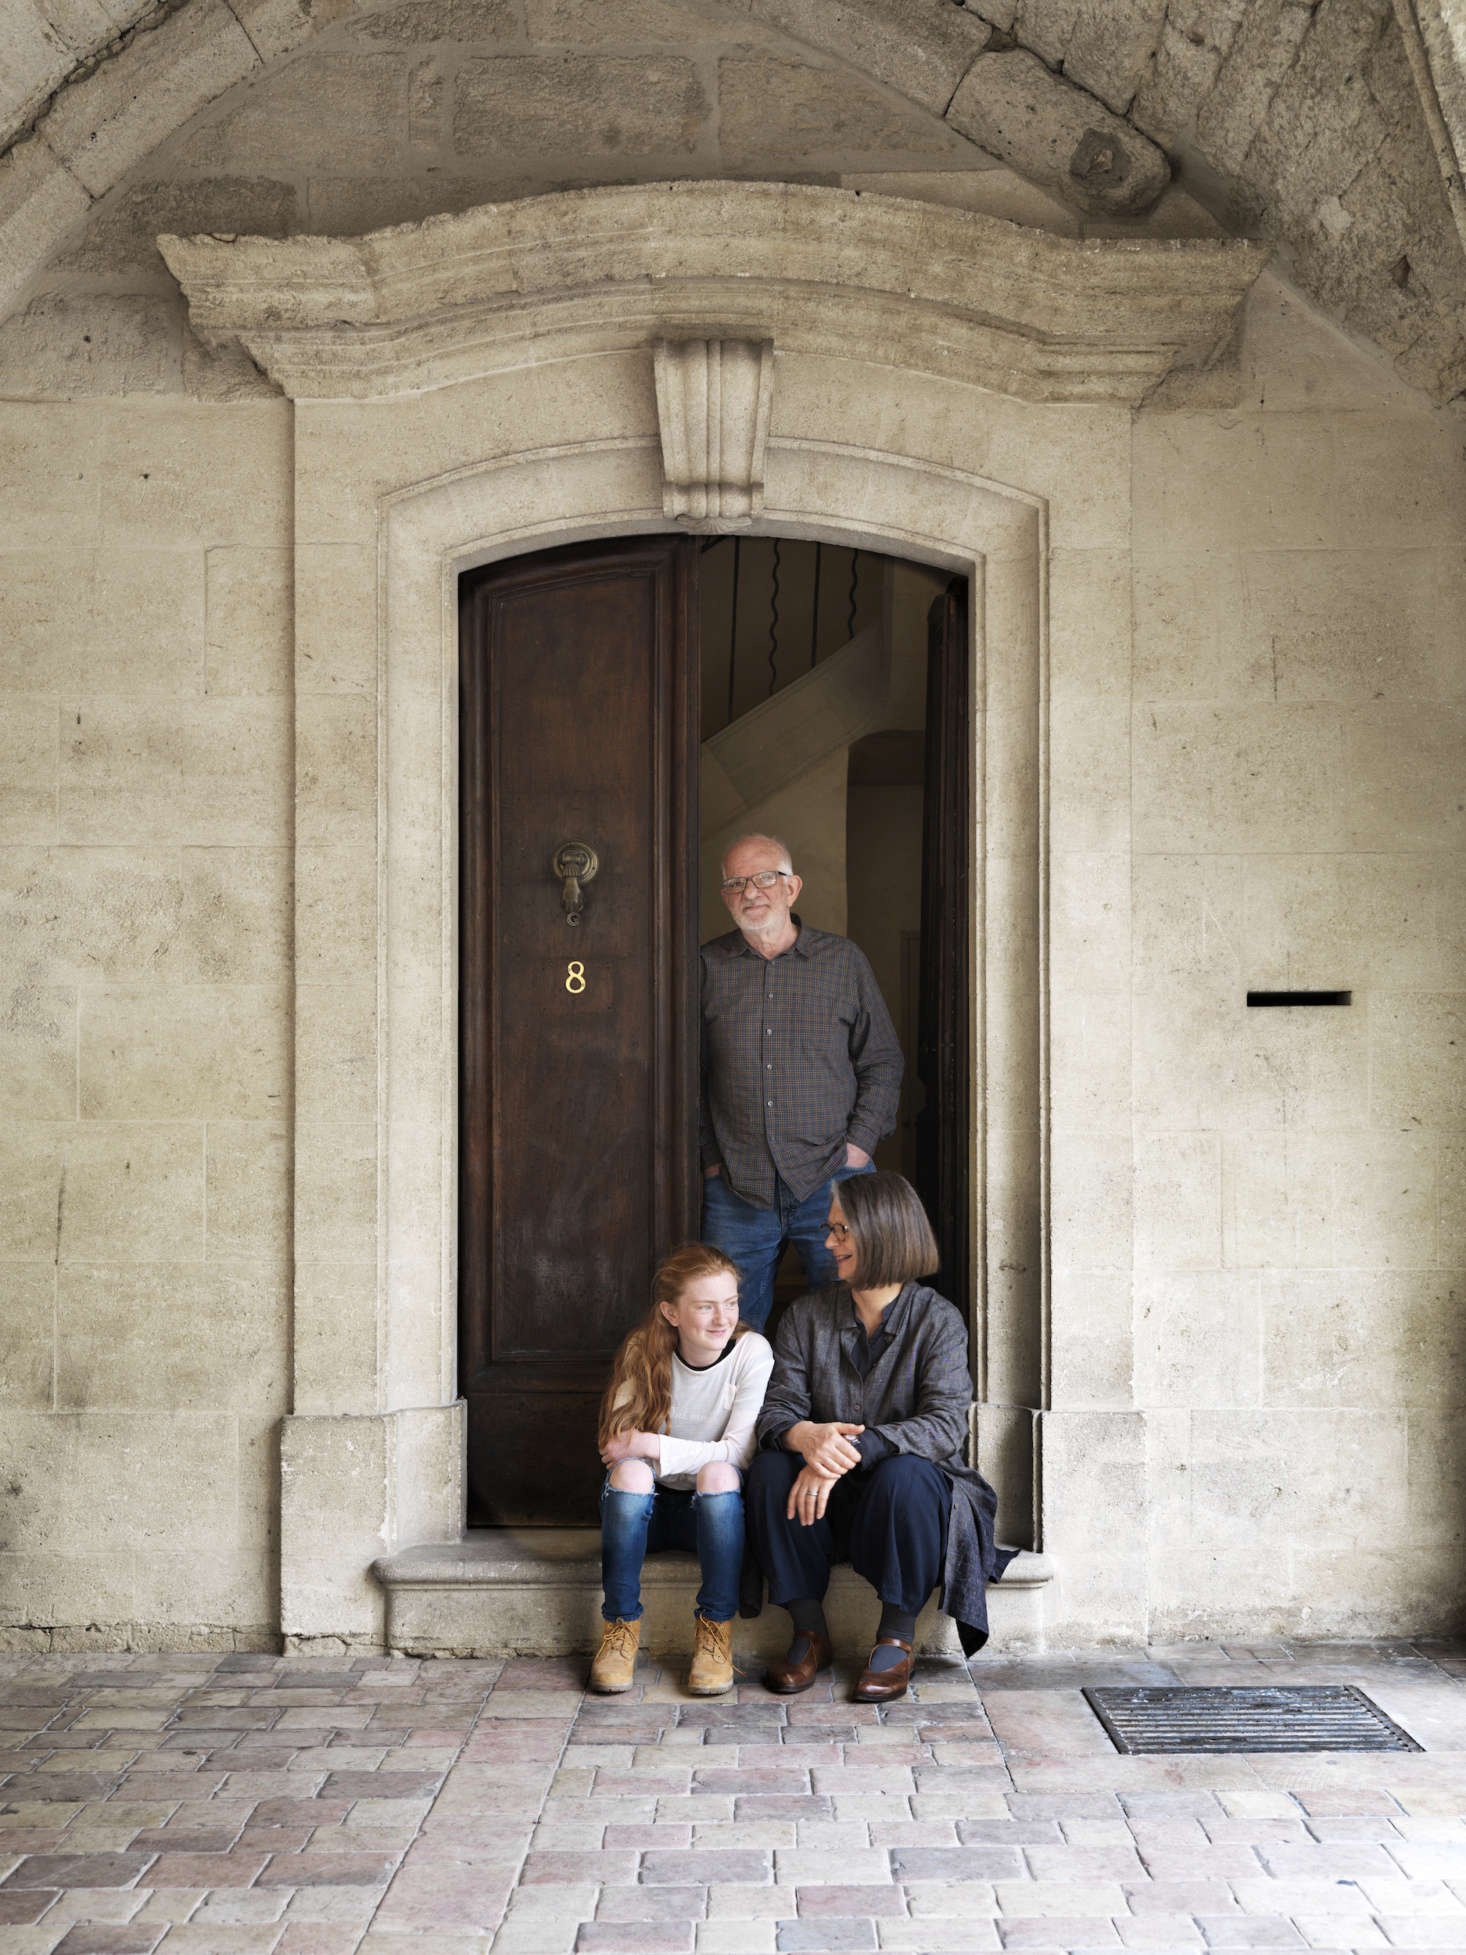 Lone and Chris McCarter with their granddaughter, Lily, on the front step of their home.